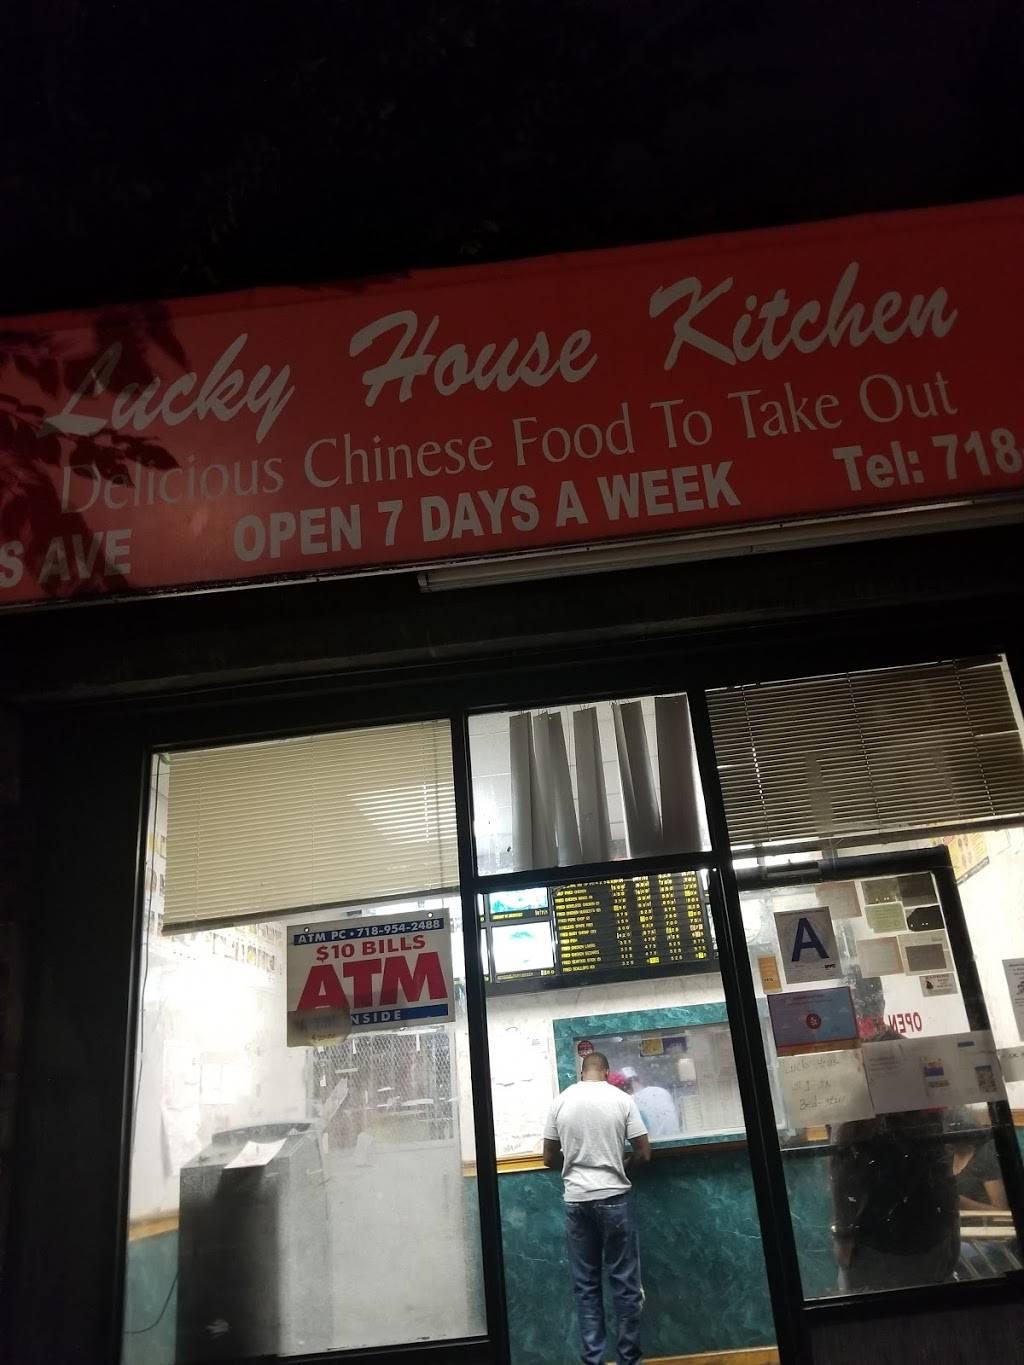 Lucky House Kitchen | restaurant | 343 Lewis Ave, Brooklyn, NY 11233, USA | 7184432298 OR +1 718-443-2298